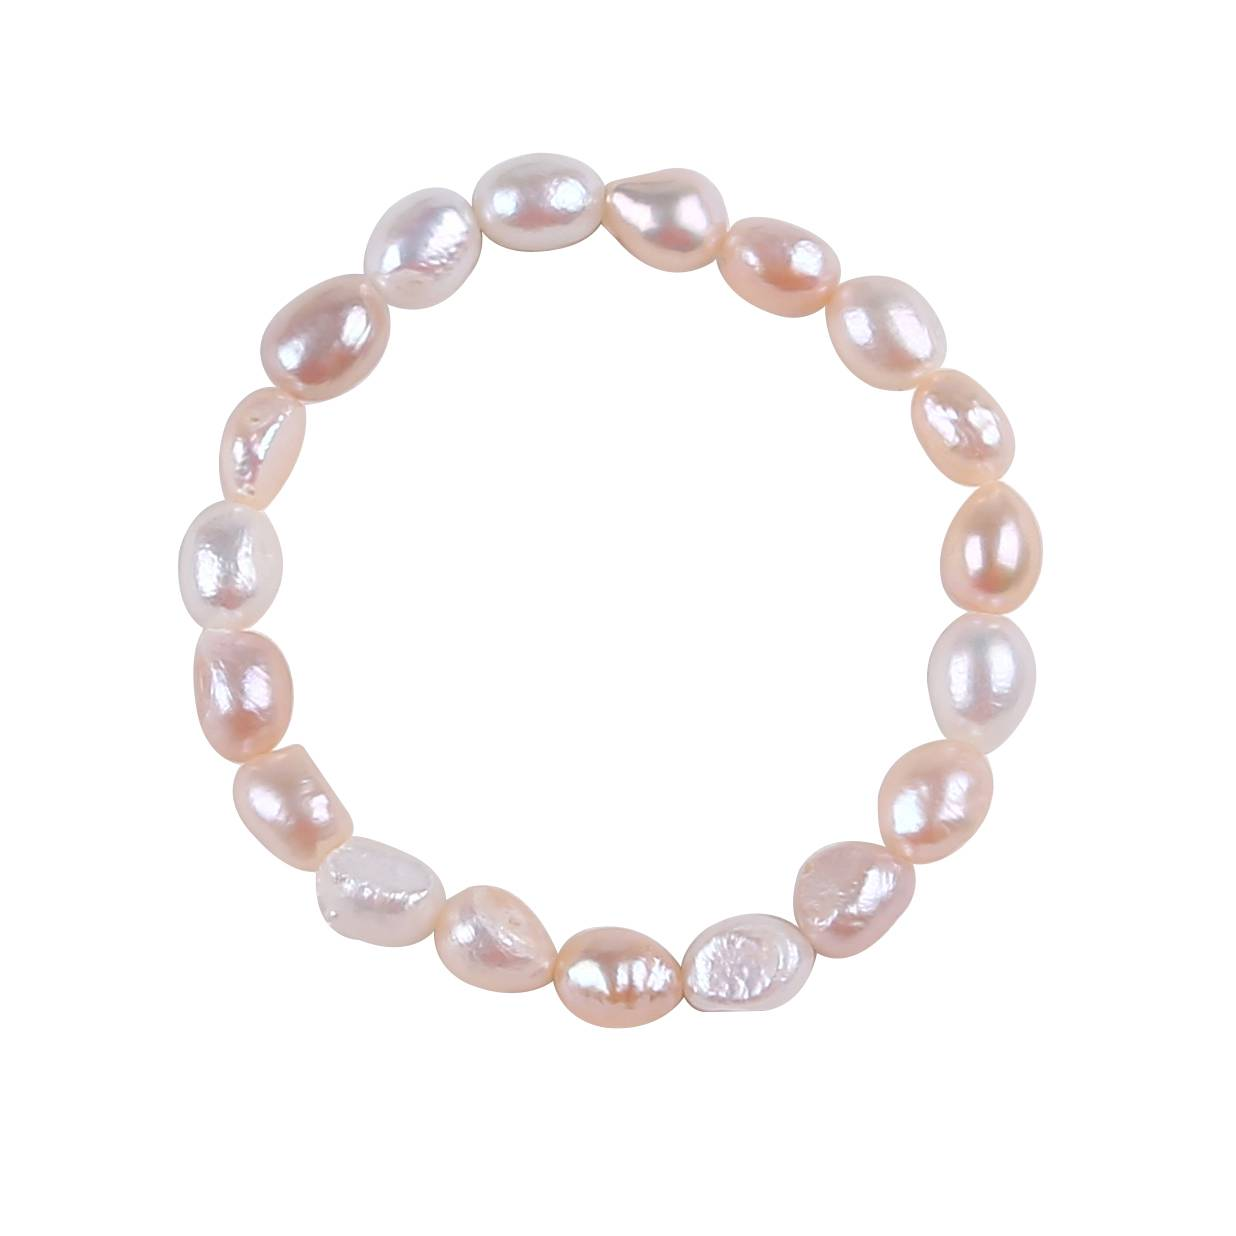 Beautiful High Lustre Baroque Freshwater Pearl Bracelet,PB001